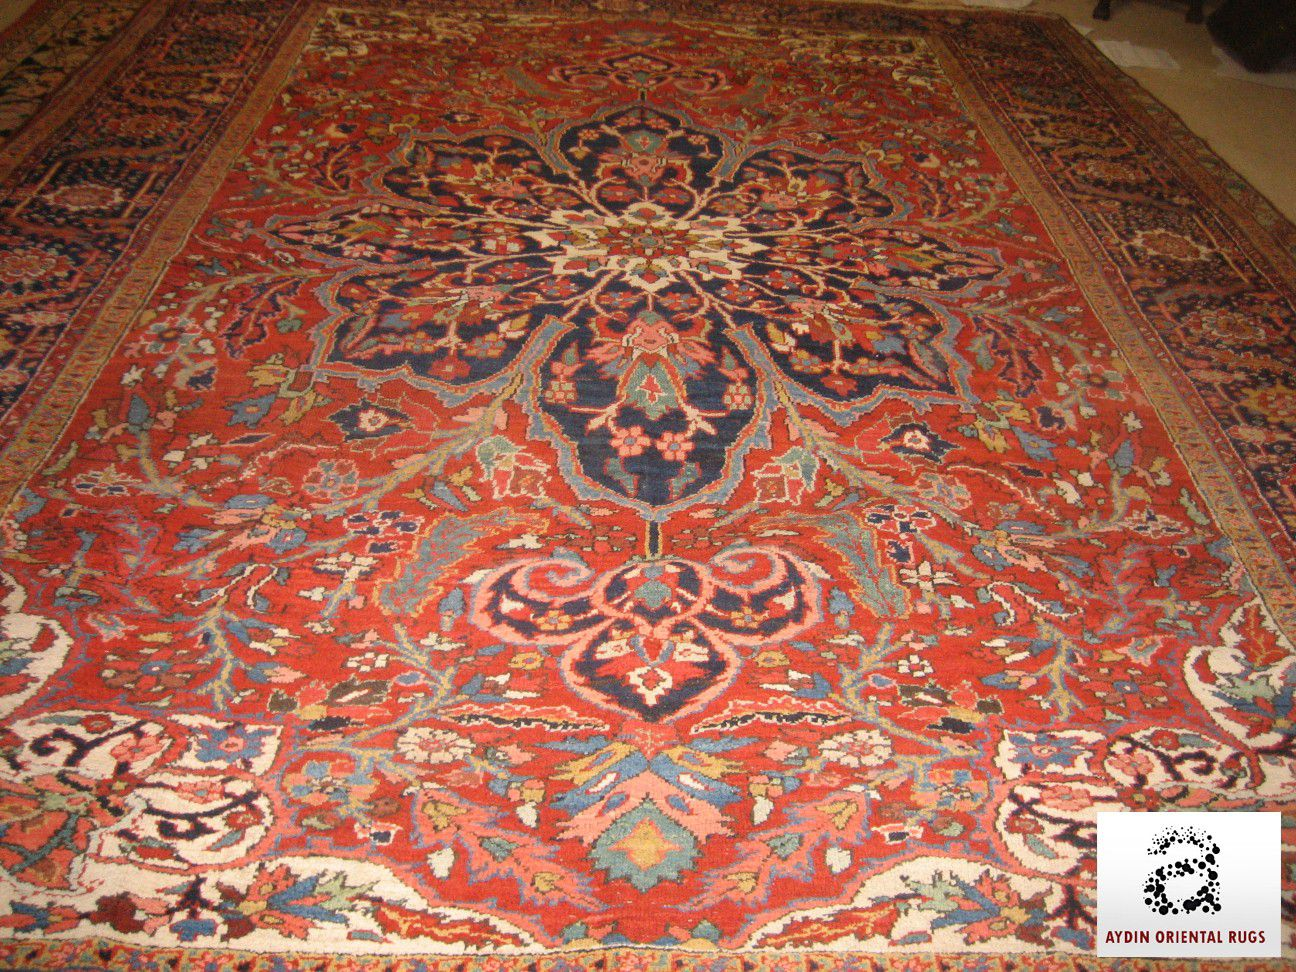 Aydin Oriental Rugs Collection Carpets 2016